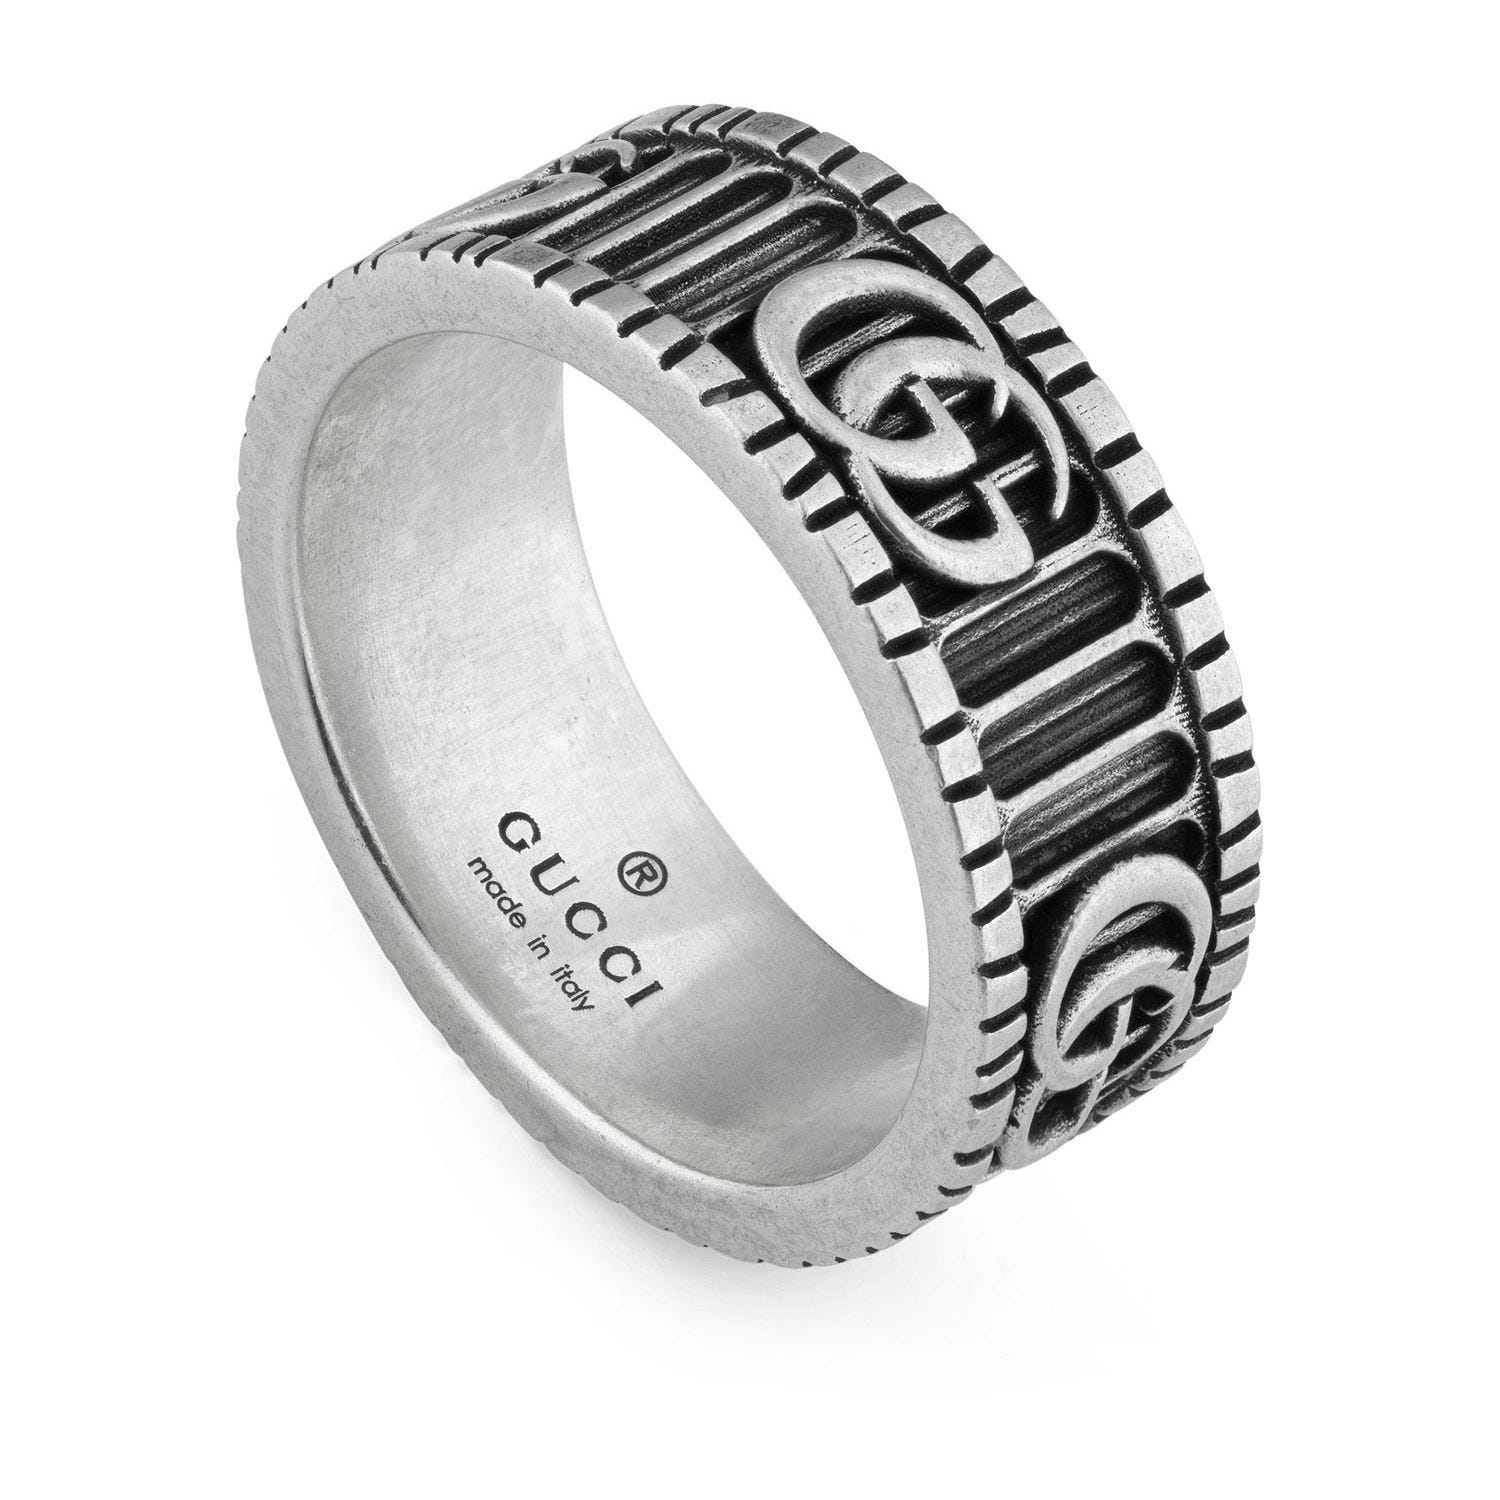 Gucci Marmont Double G Sterling Silver Ring Size M